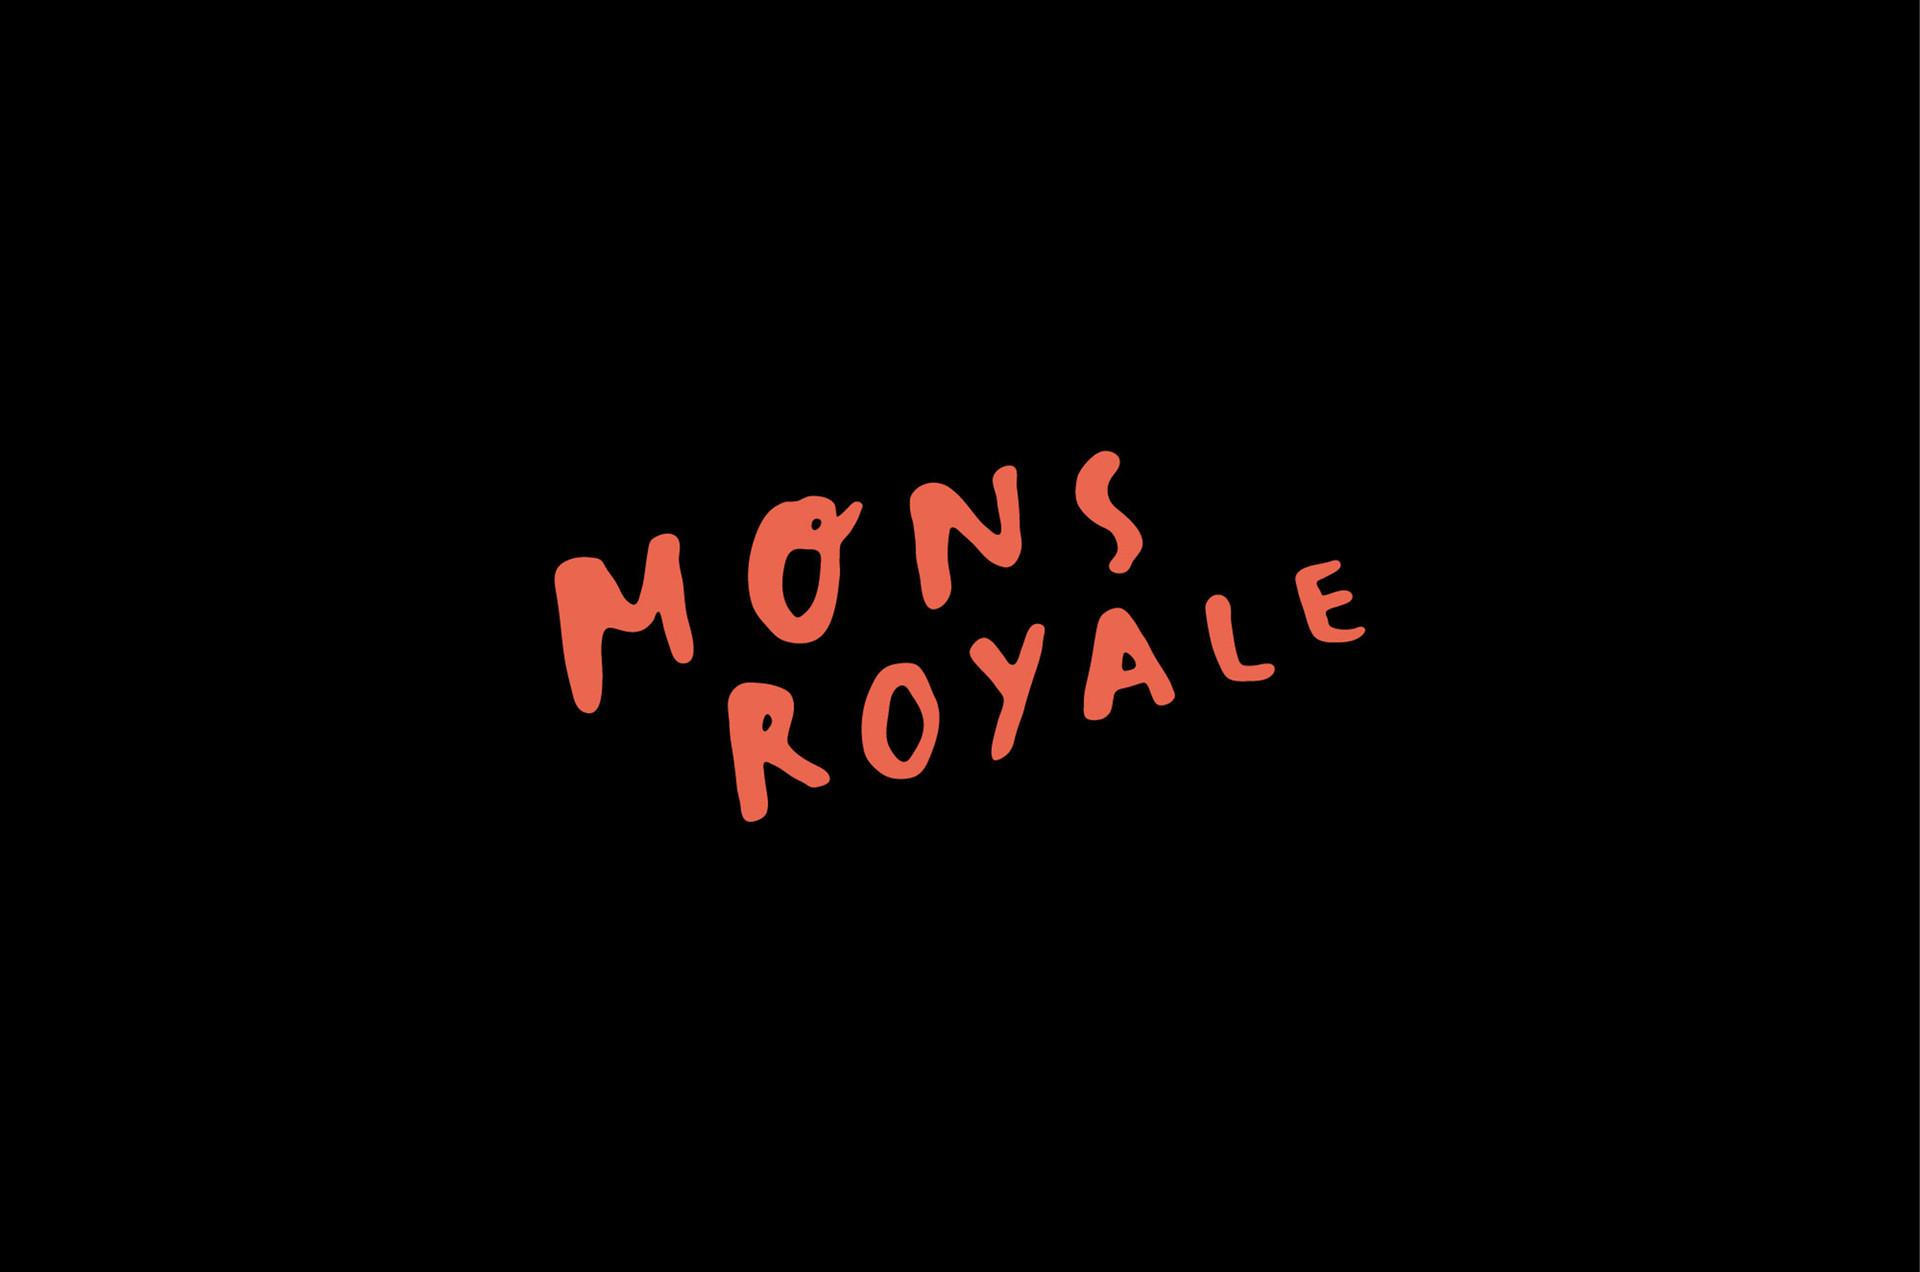 Mons Royale Handrawn Logo Placement Print